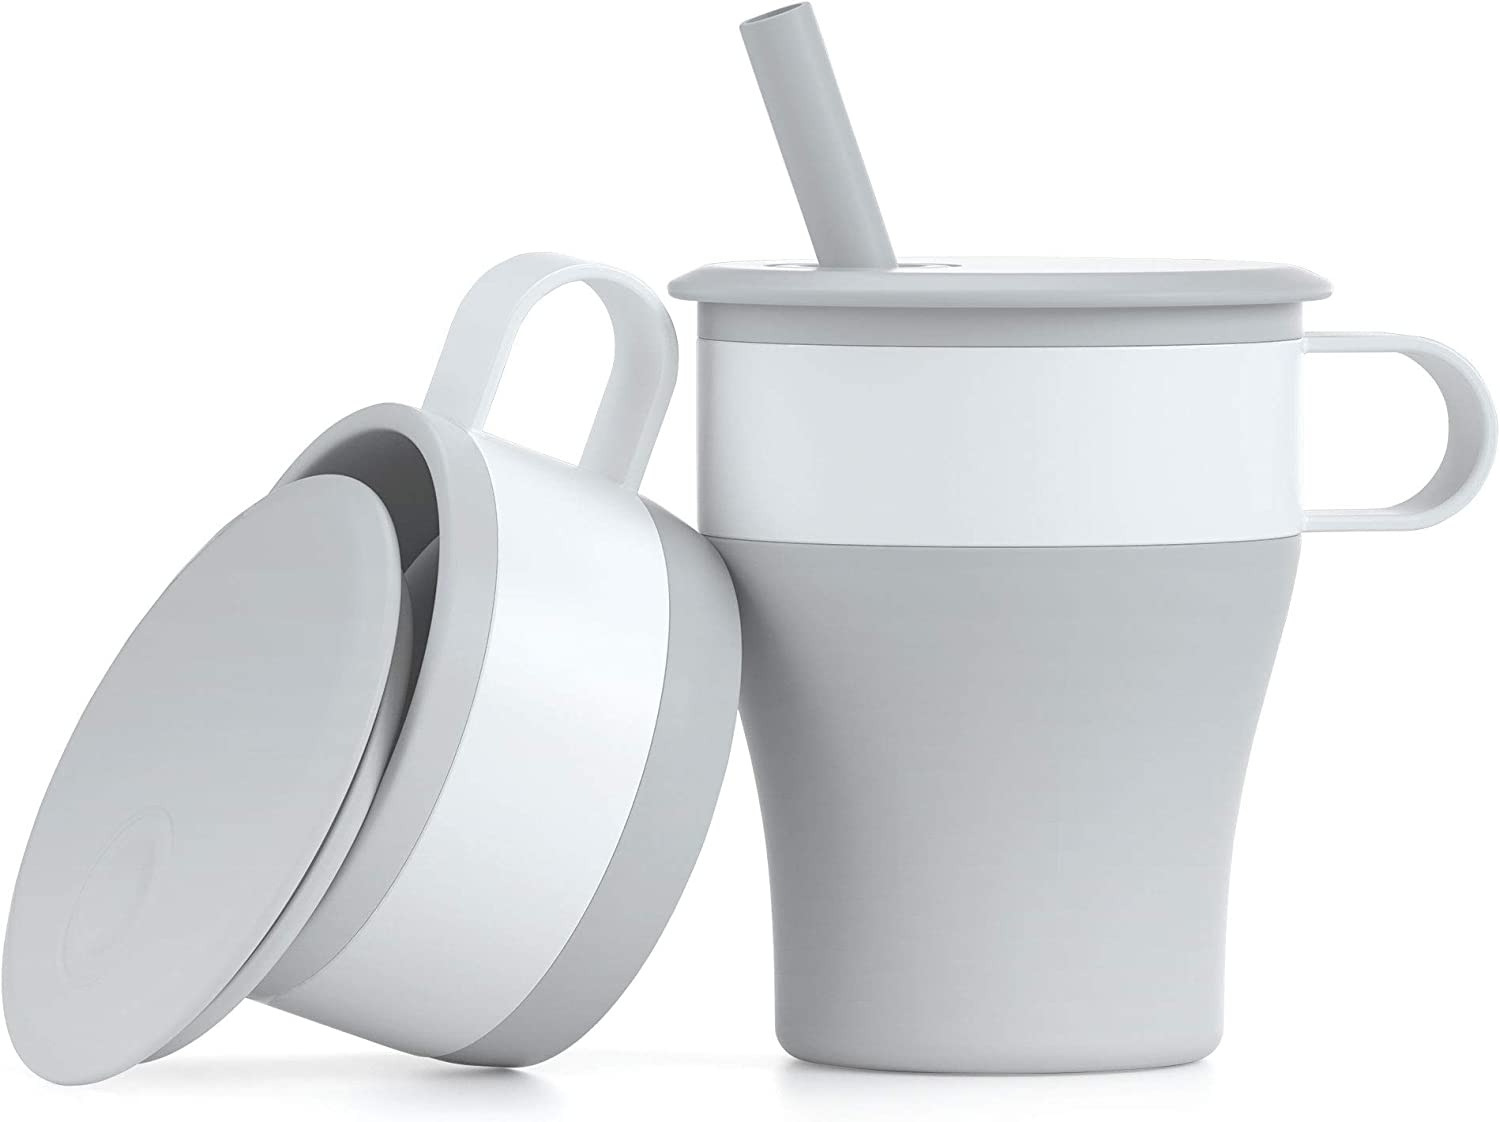 MommyLove Collapsible Cups with Handle & Straw (16oz,BPA Free,Food Grade Silicone) Foldable Travel Coffee Mug - LightGrey